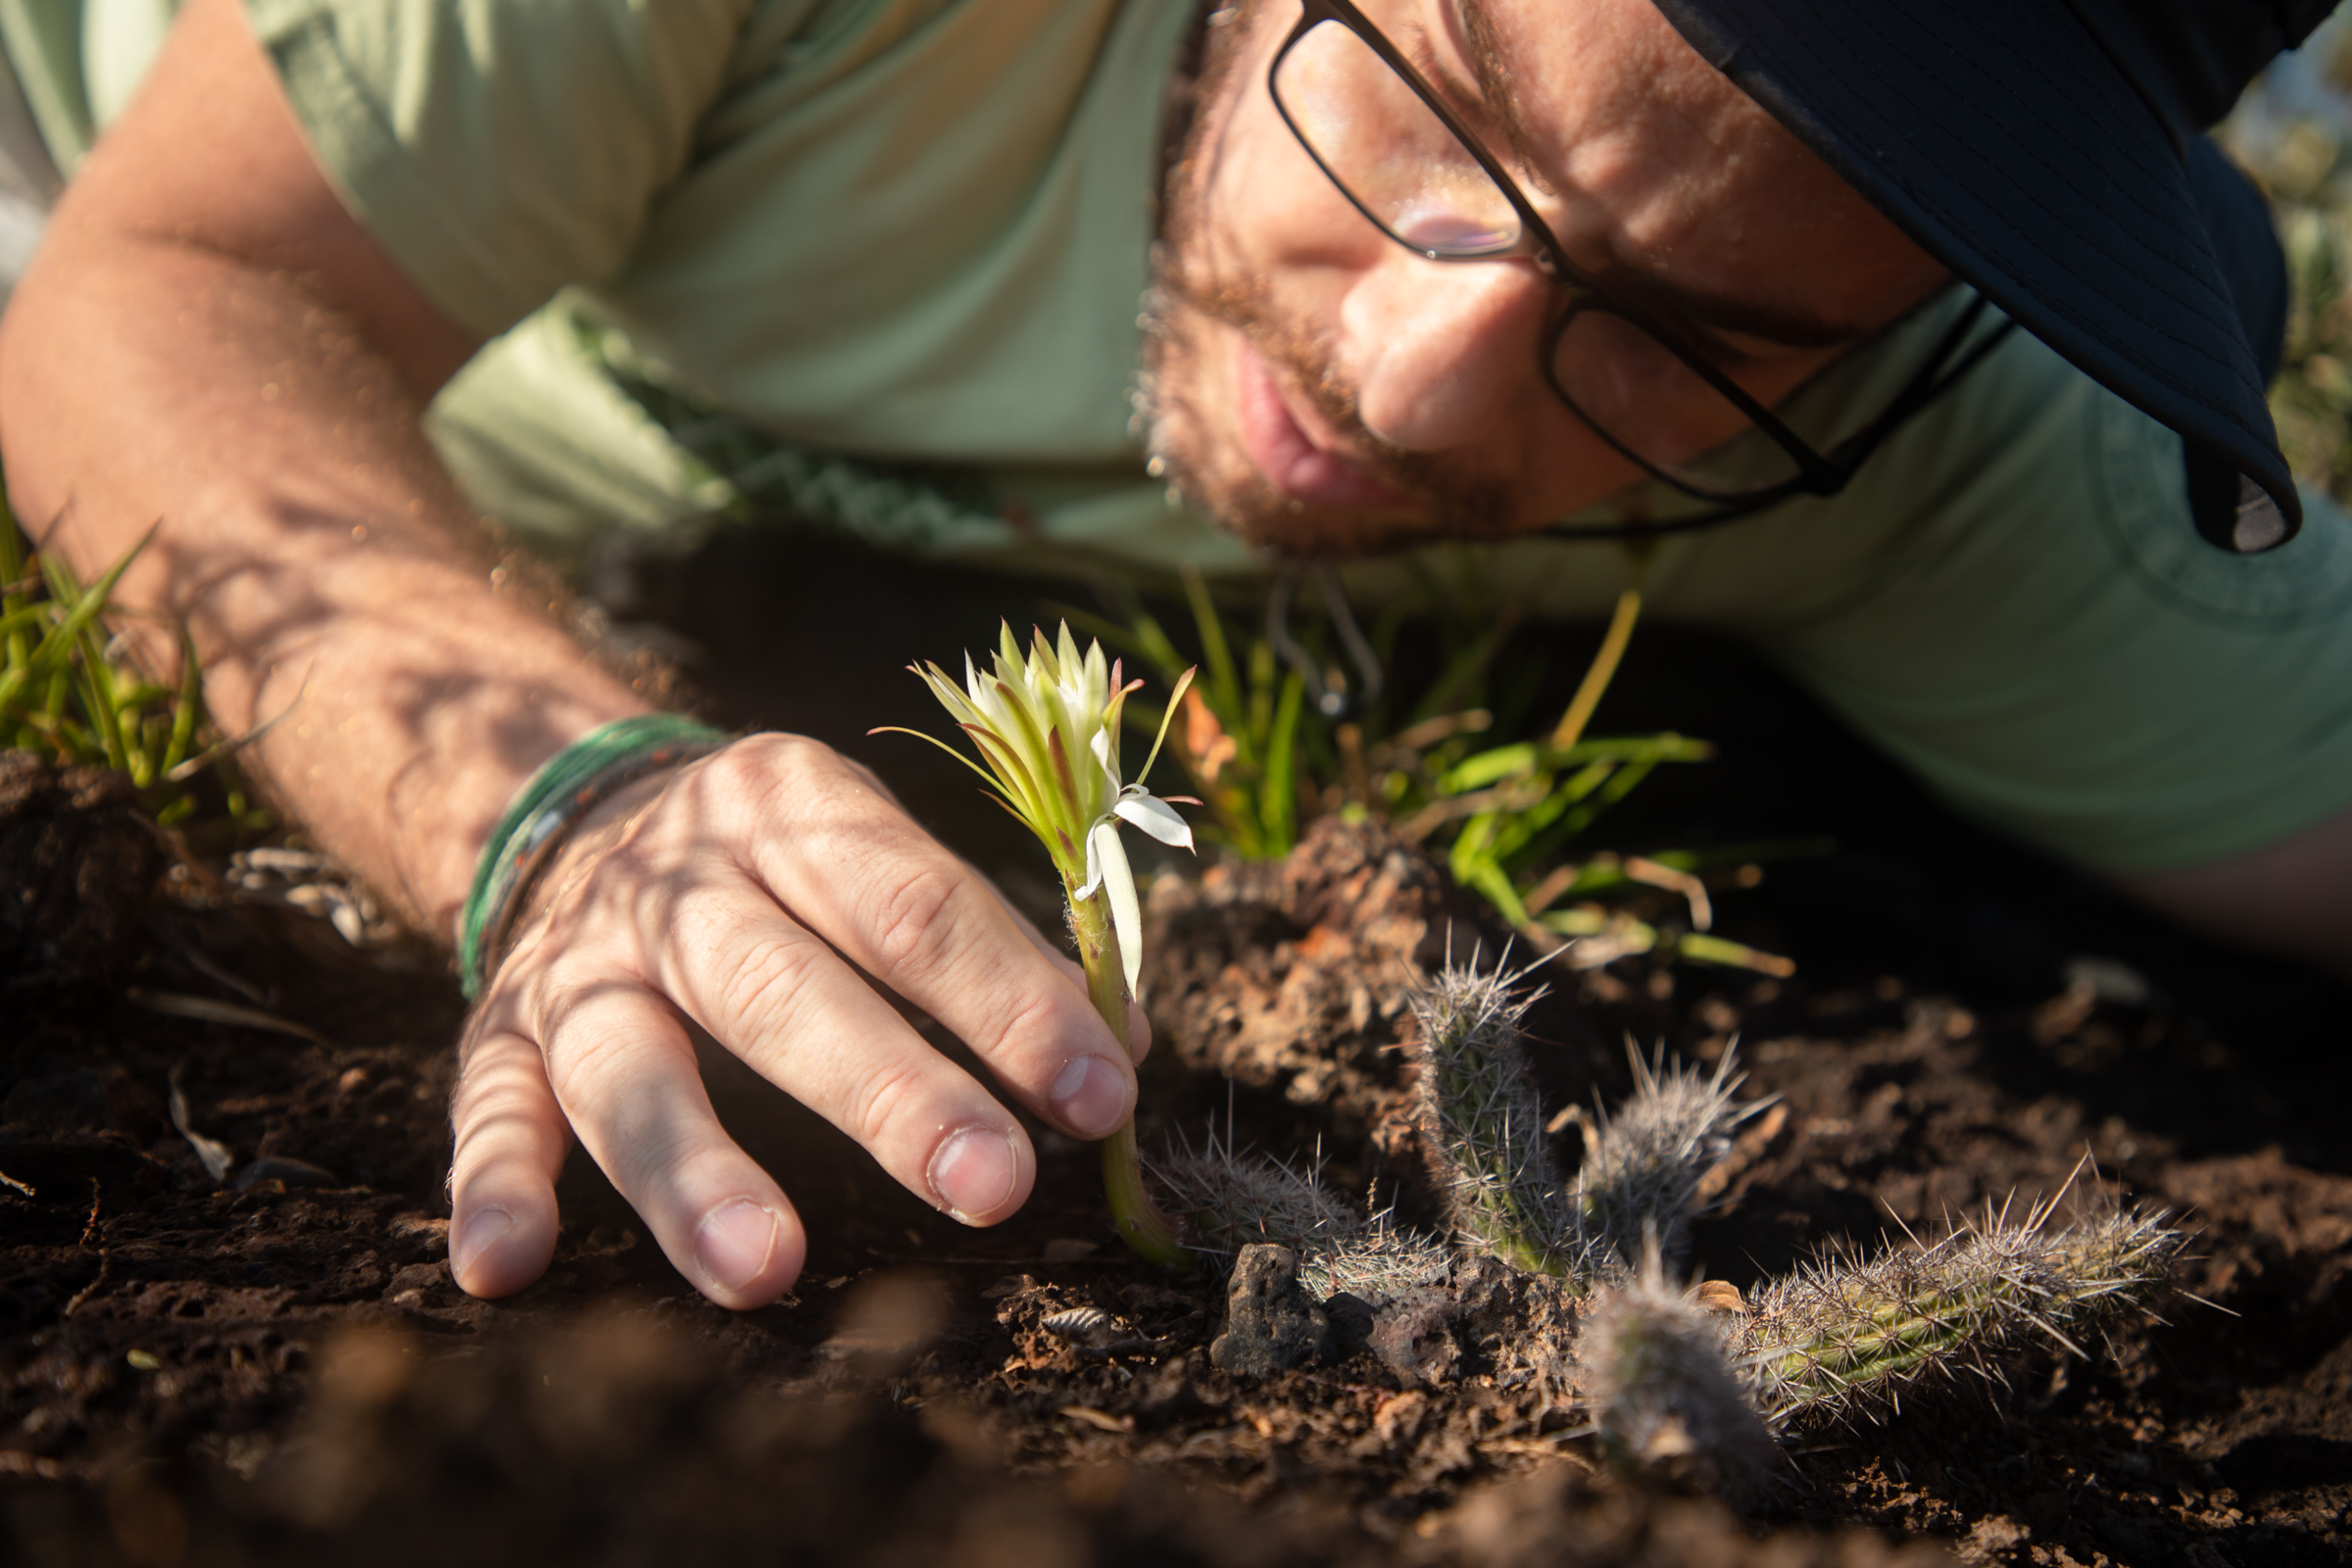 Fernando Silveira, professor and researcher at the Federal University of Minas Gerais, examines a rare specimen of Arthrocereus glaziovii, a critically endangered cactus species endemic to the Campos Rupestres of Quadrilátero Ferrífero region. For years, Silveira has studied the plant diversity of the Campos Rupestres and its responses to anthropic disturbance, such as habitat loss, fragmentation, biological invasions and climate change.